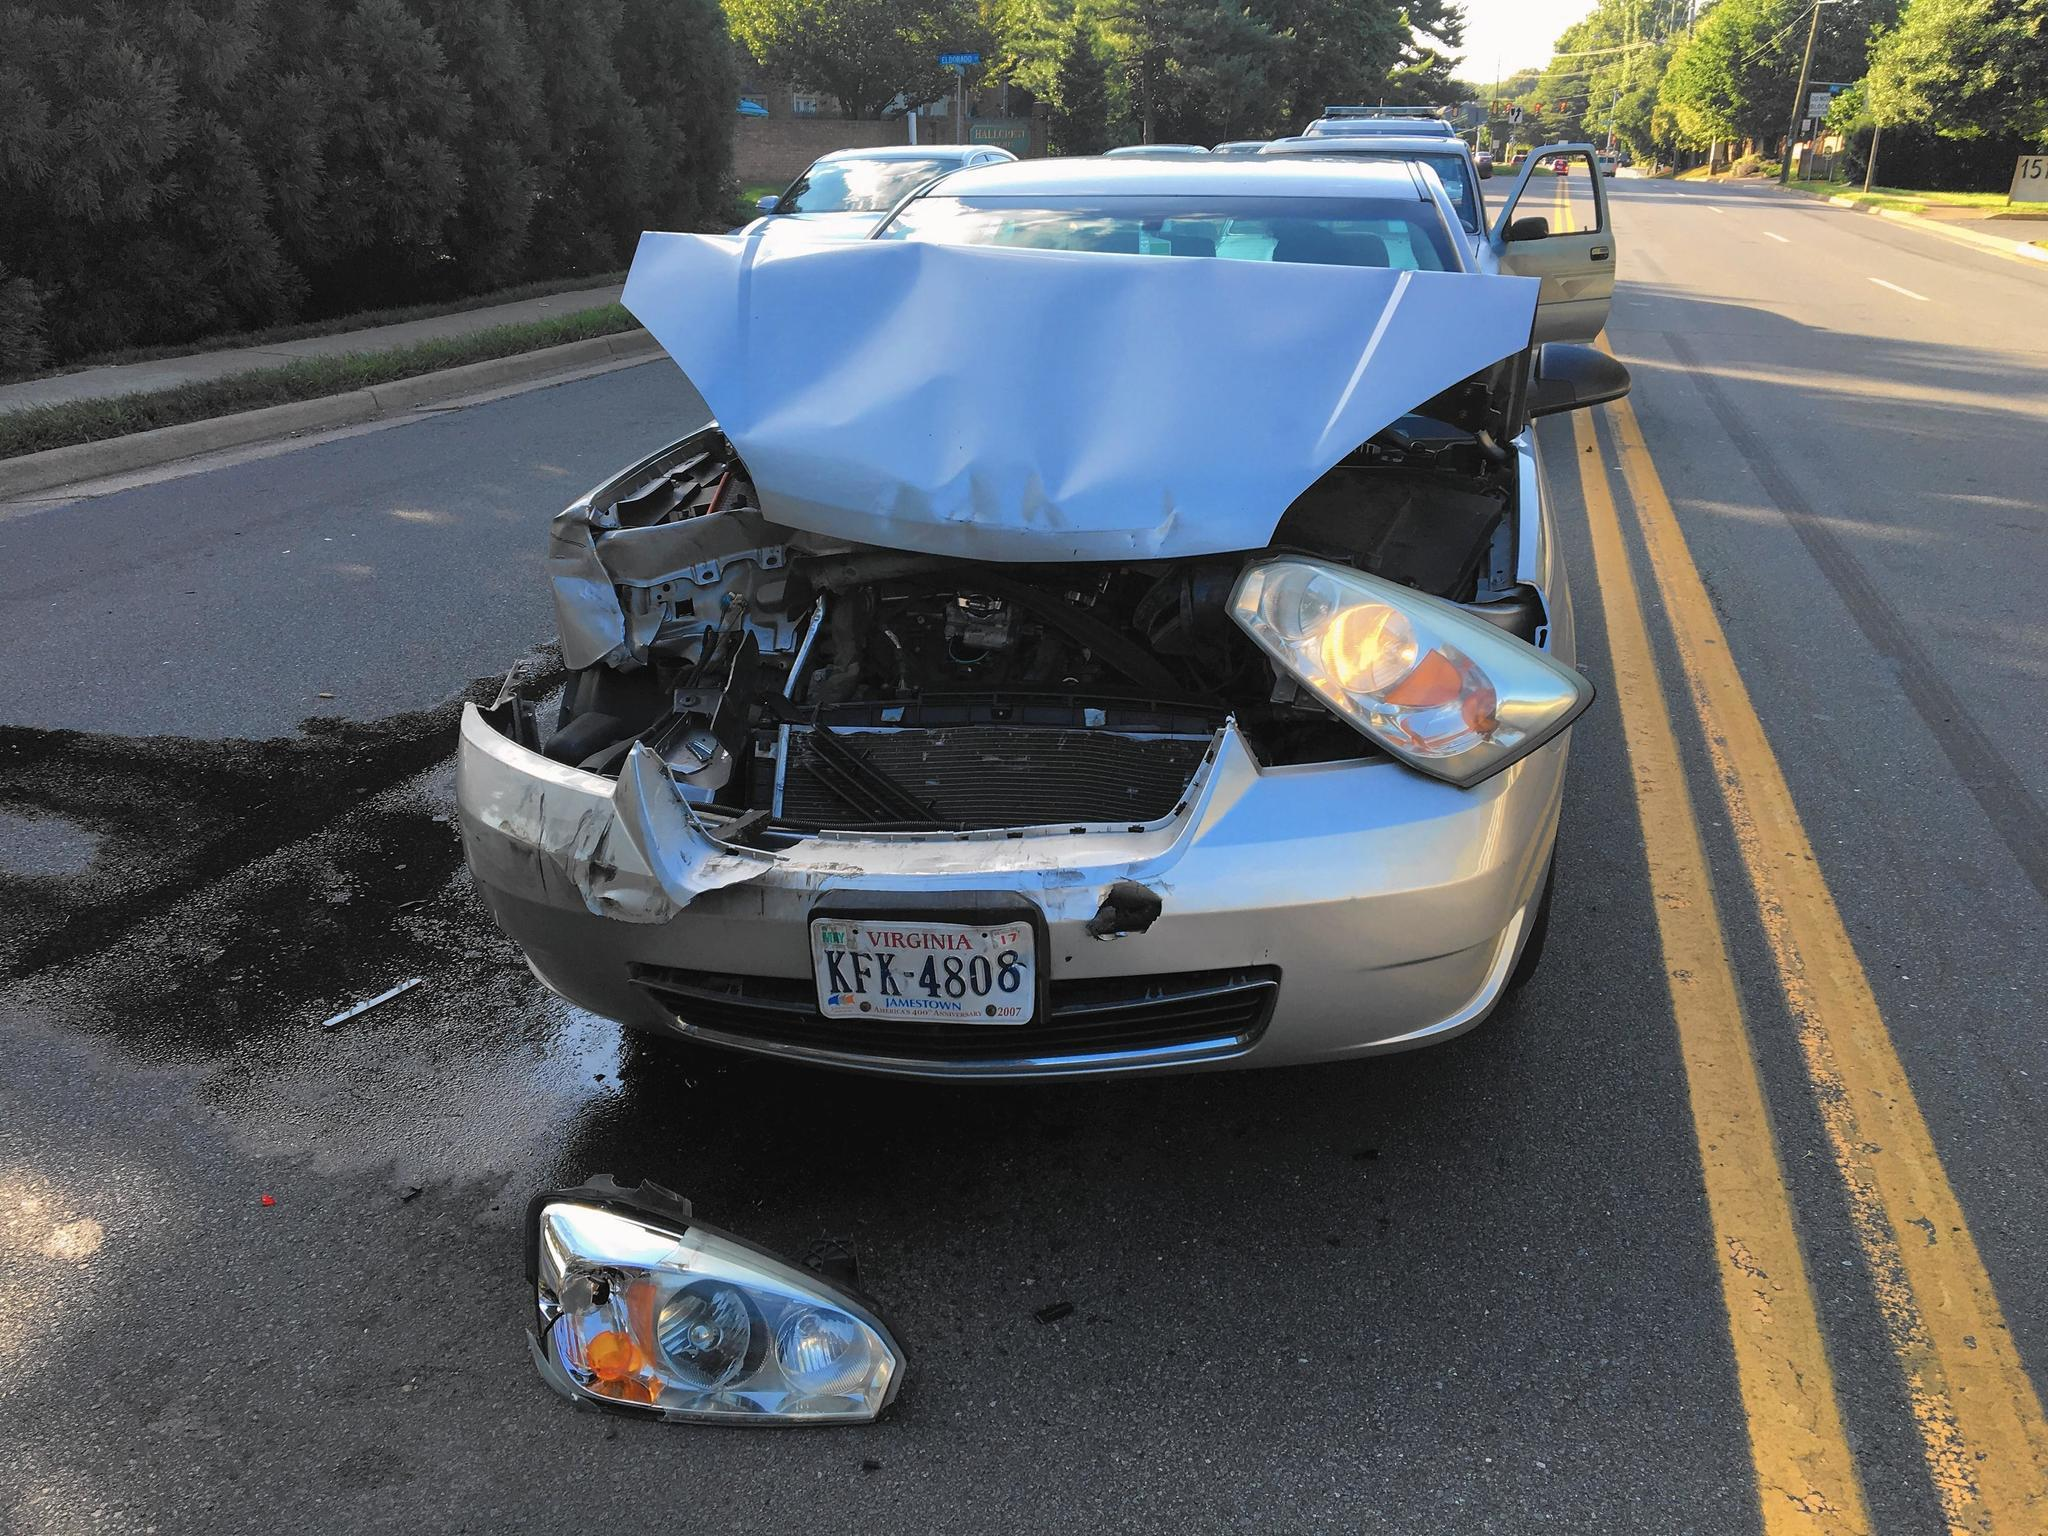 Not at fault in a car crash insurance rates jacked up anyway lehigh valley business cycle